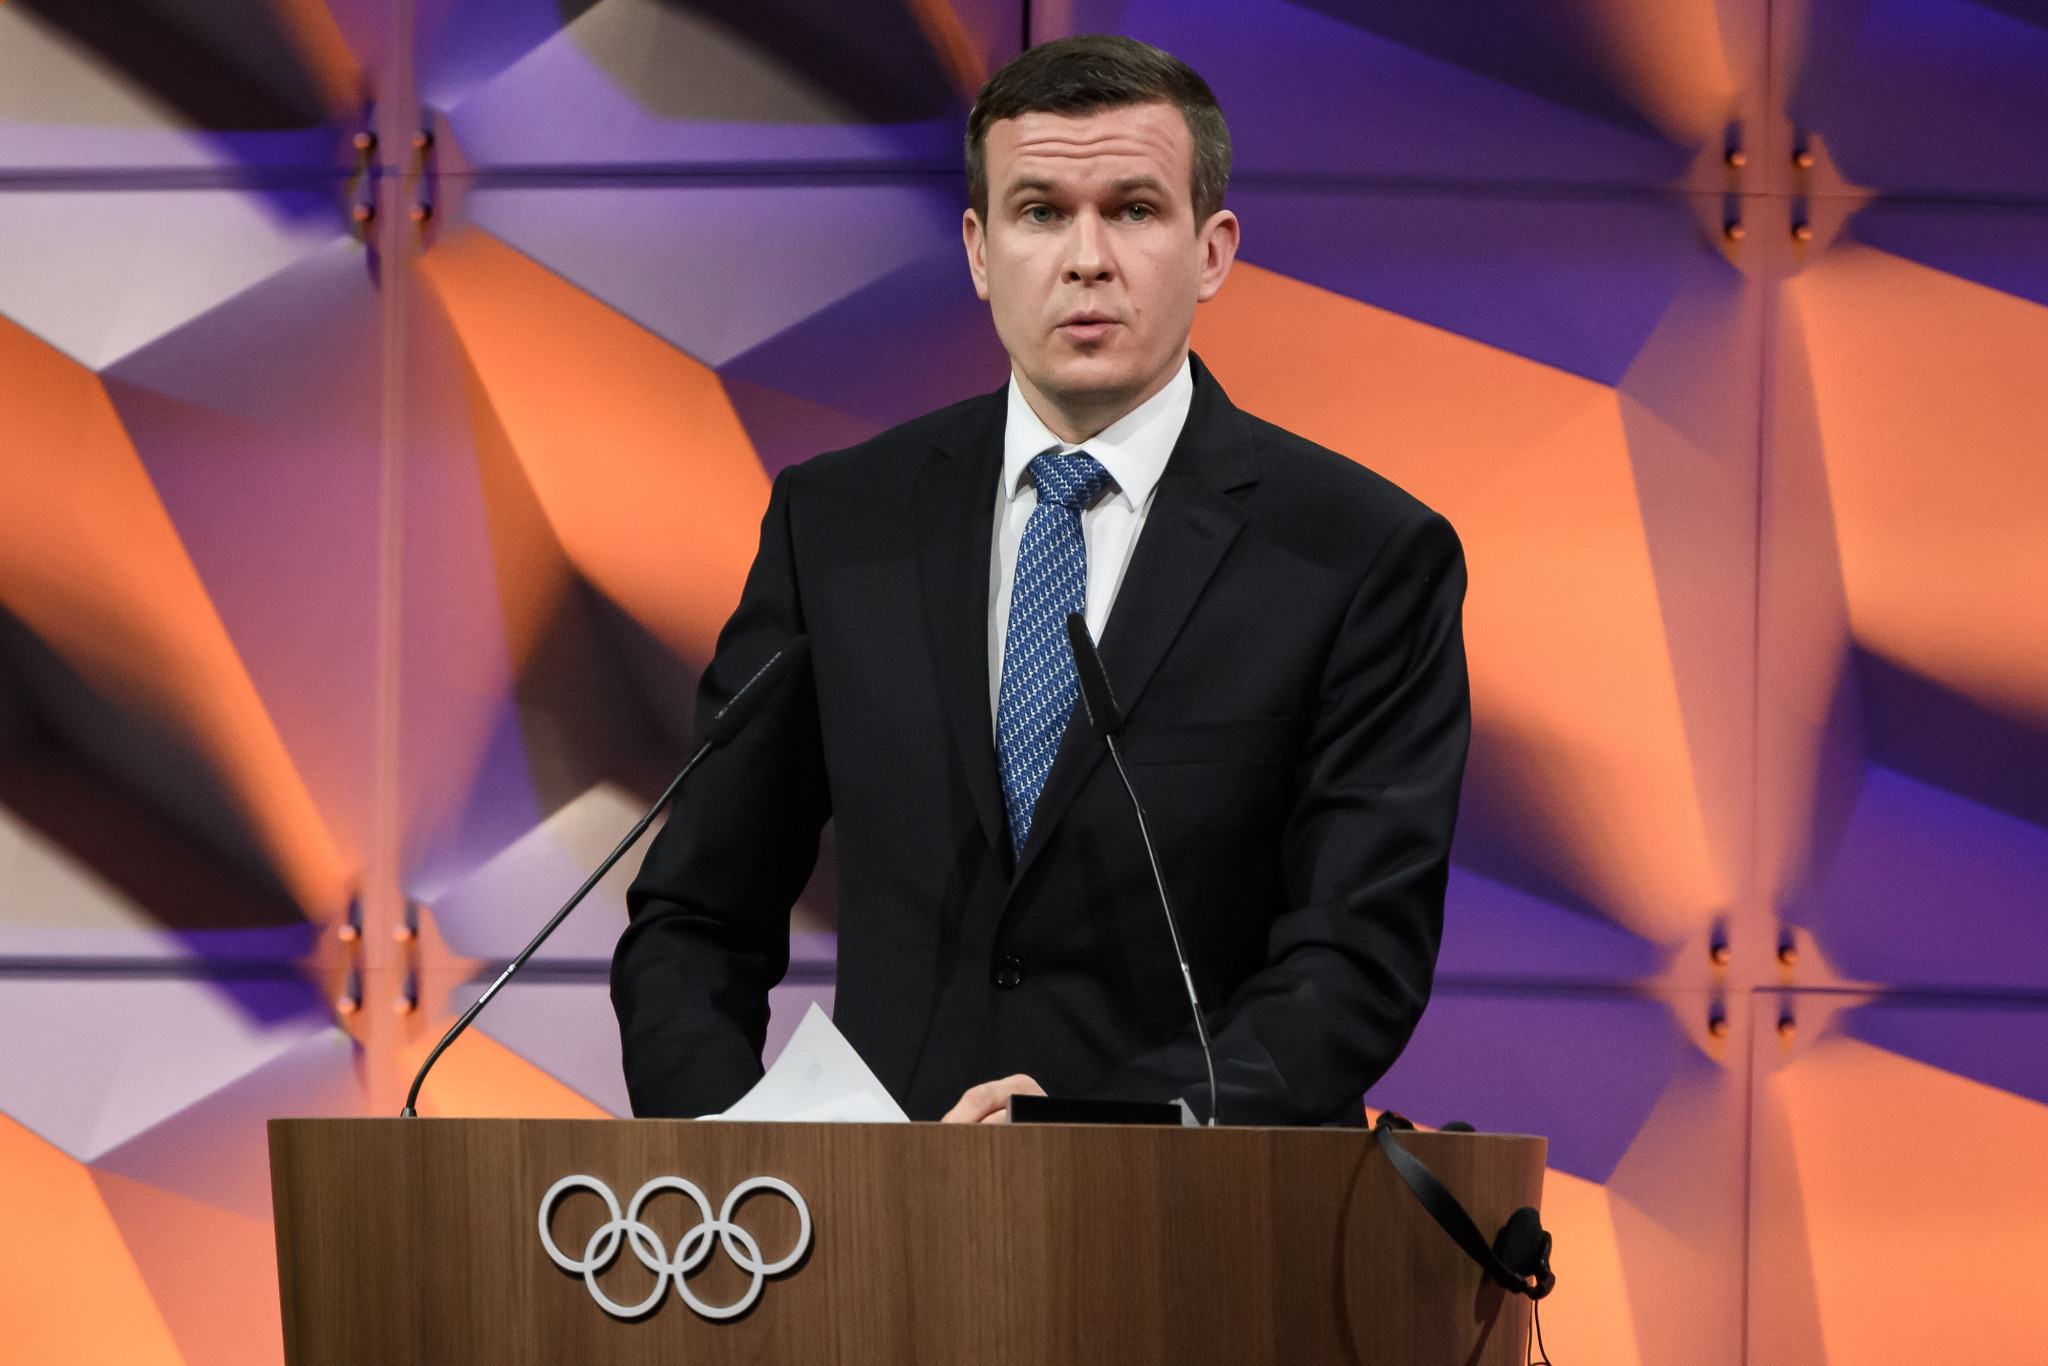 WADA President Witold Bańka stressed the first priority must be health and safety ©Getty Images